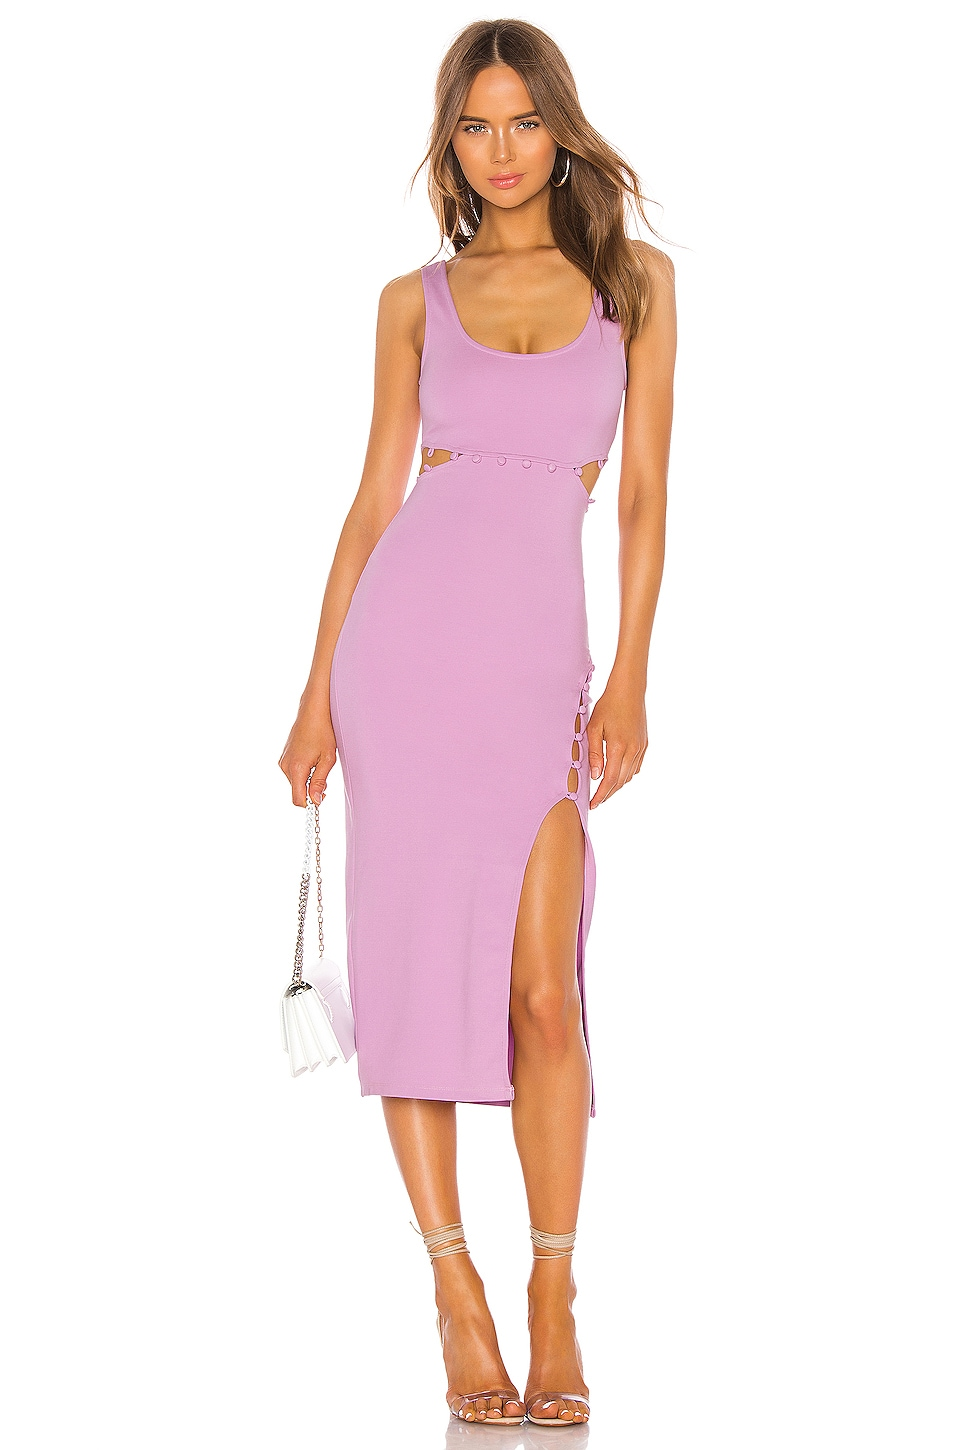 h:ours Samiah Dress in Lilac